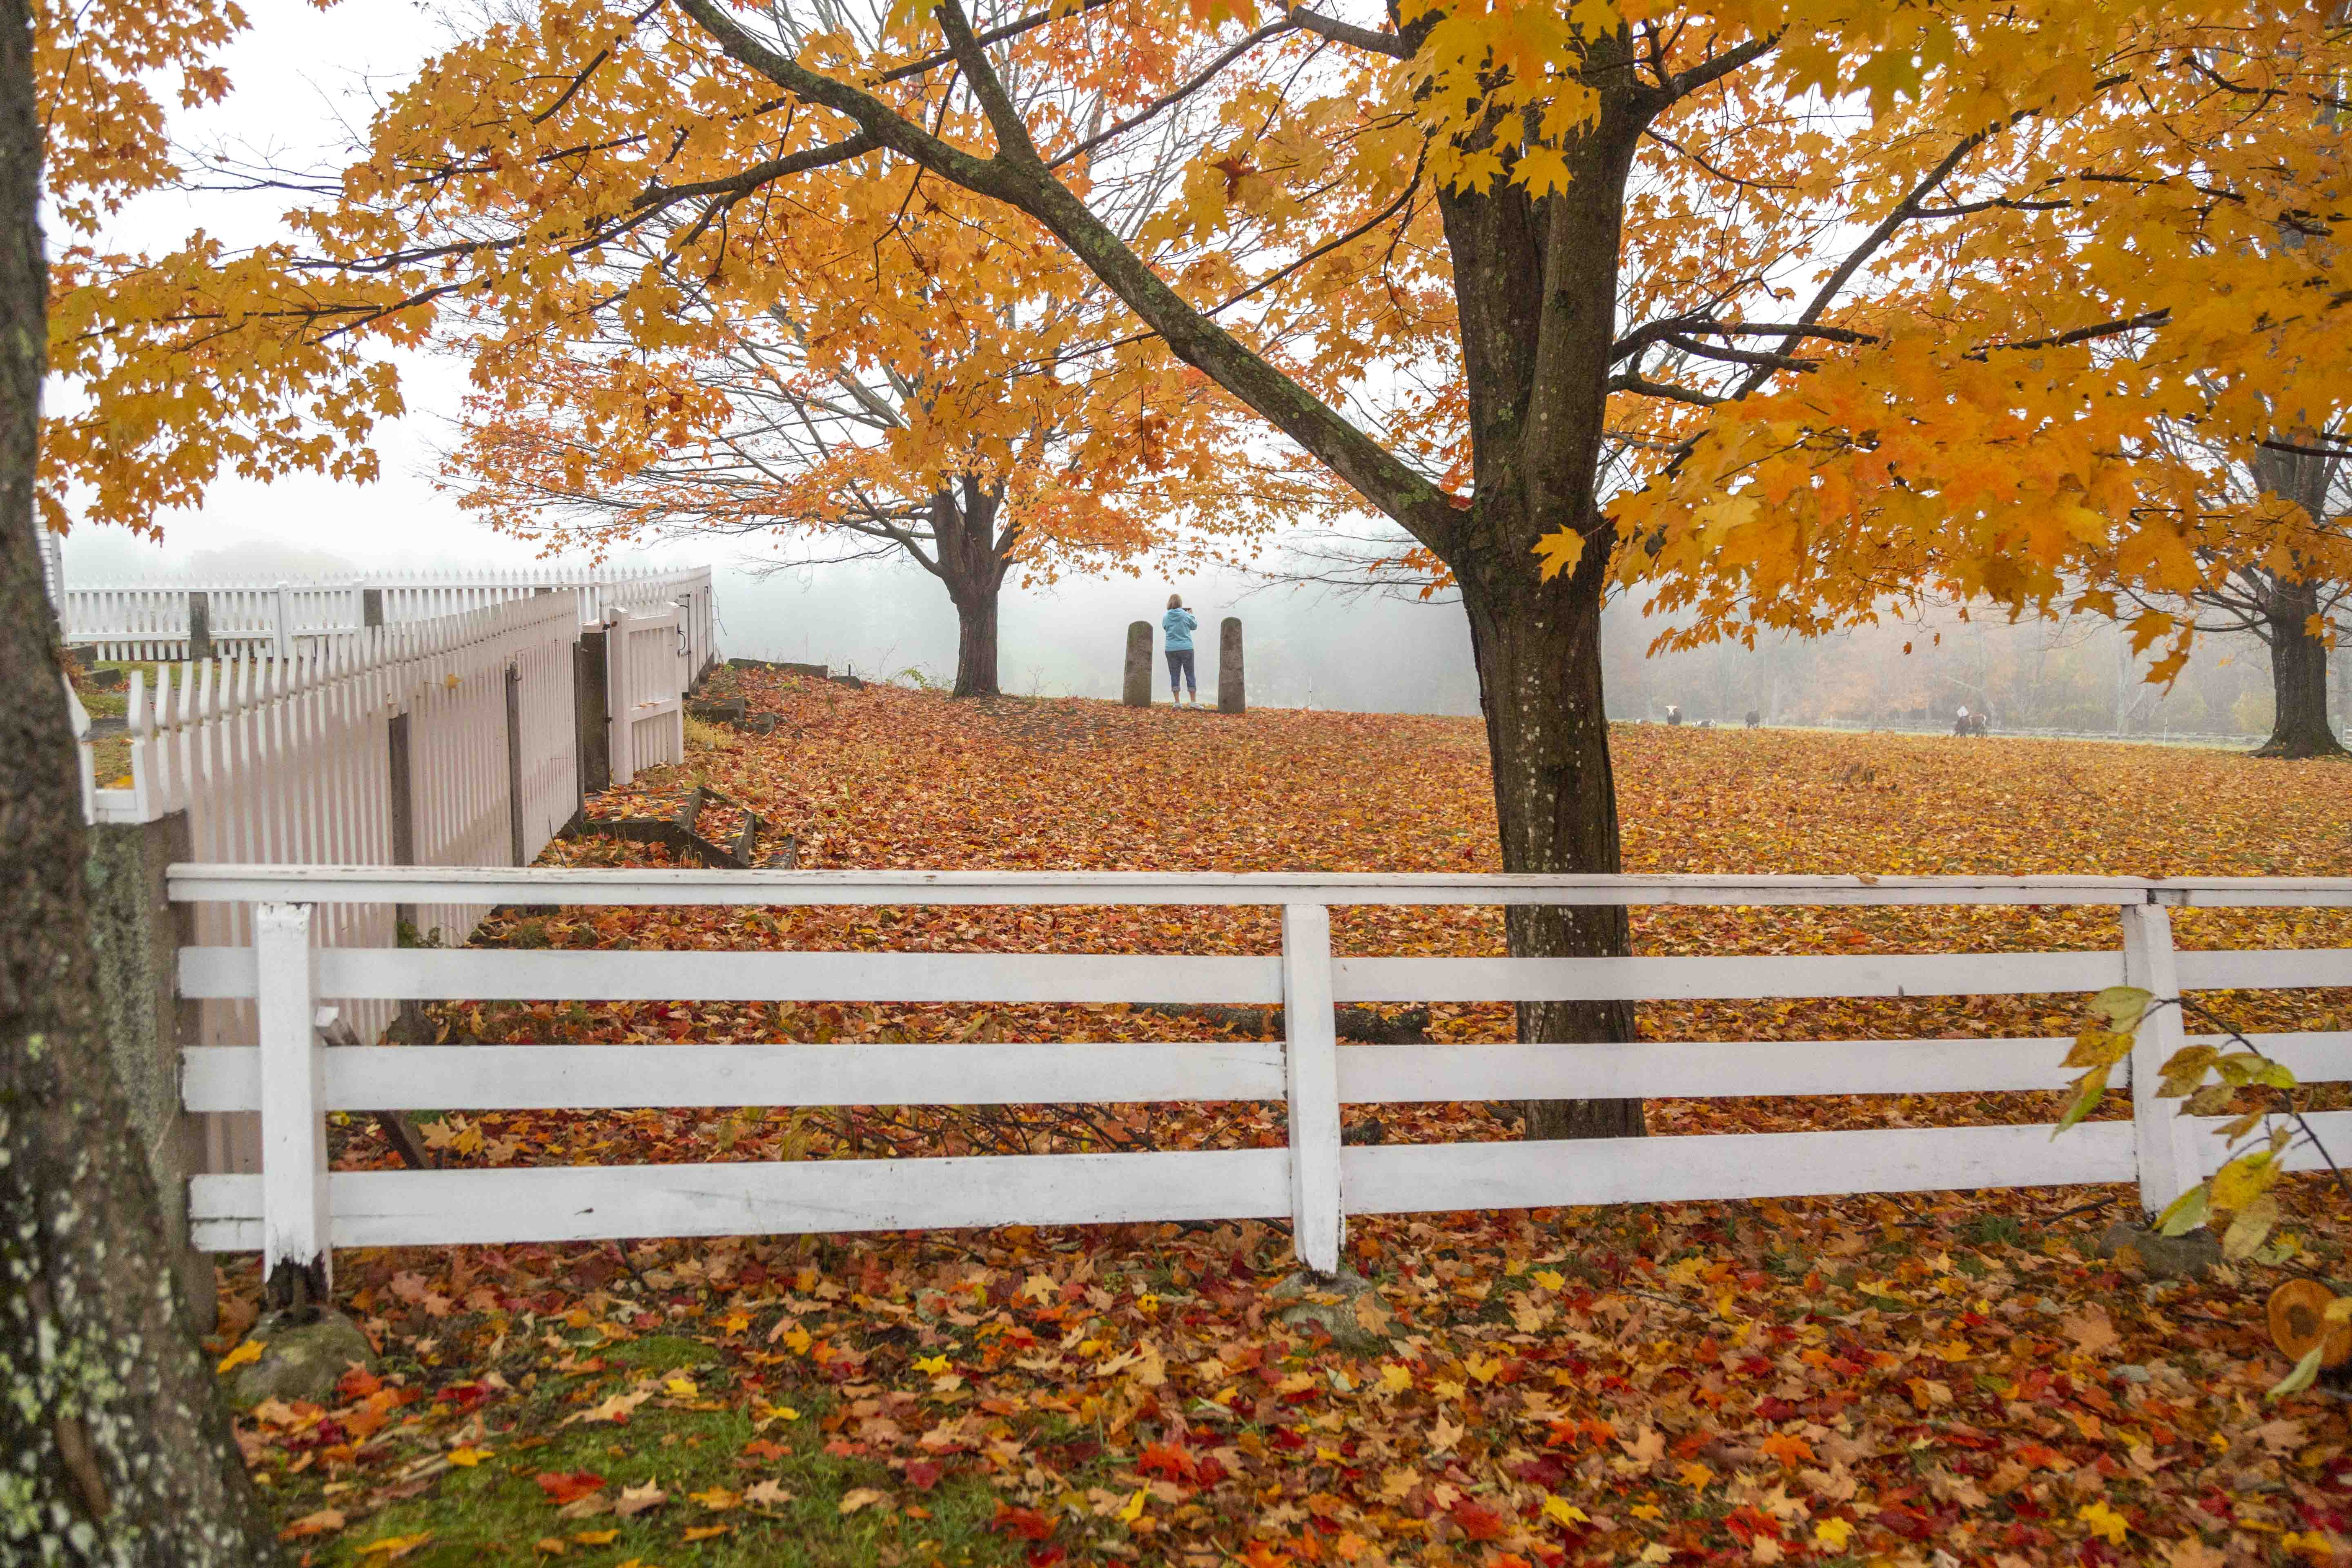 White picket fence with a tree covered in fall foliage behind it